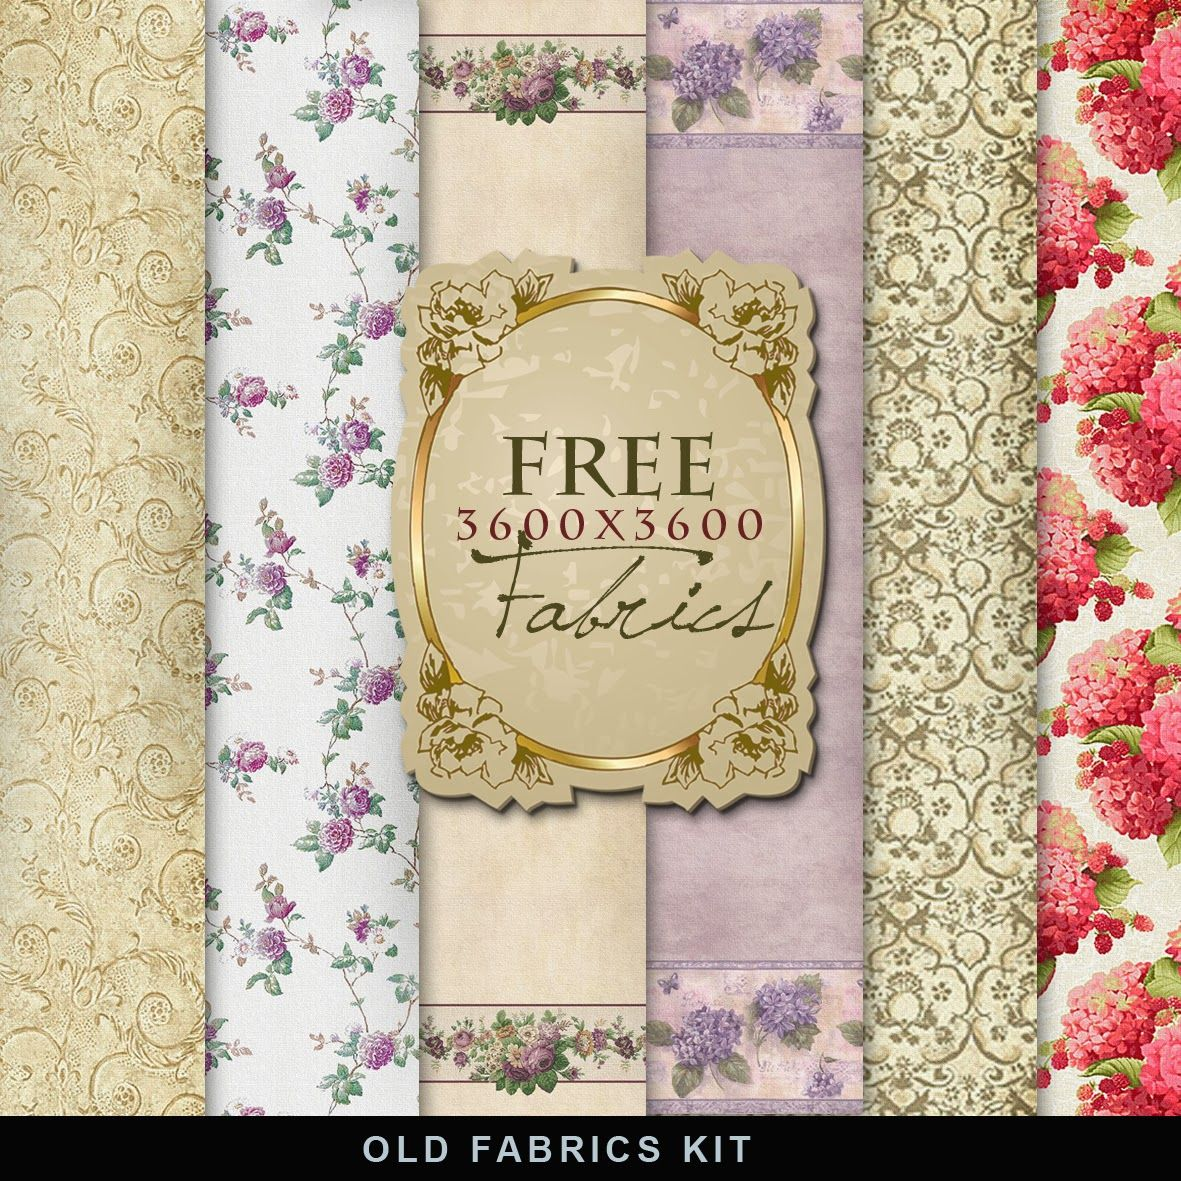 Far Far Hill - Free database of digital illustrations and papers: Freebies Old Style Fabrics Kit